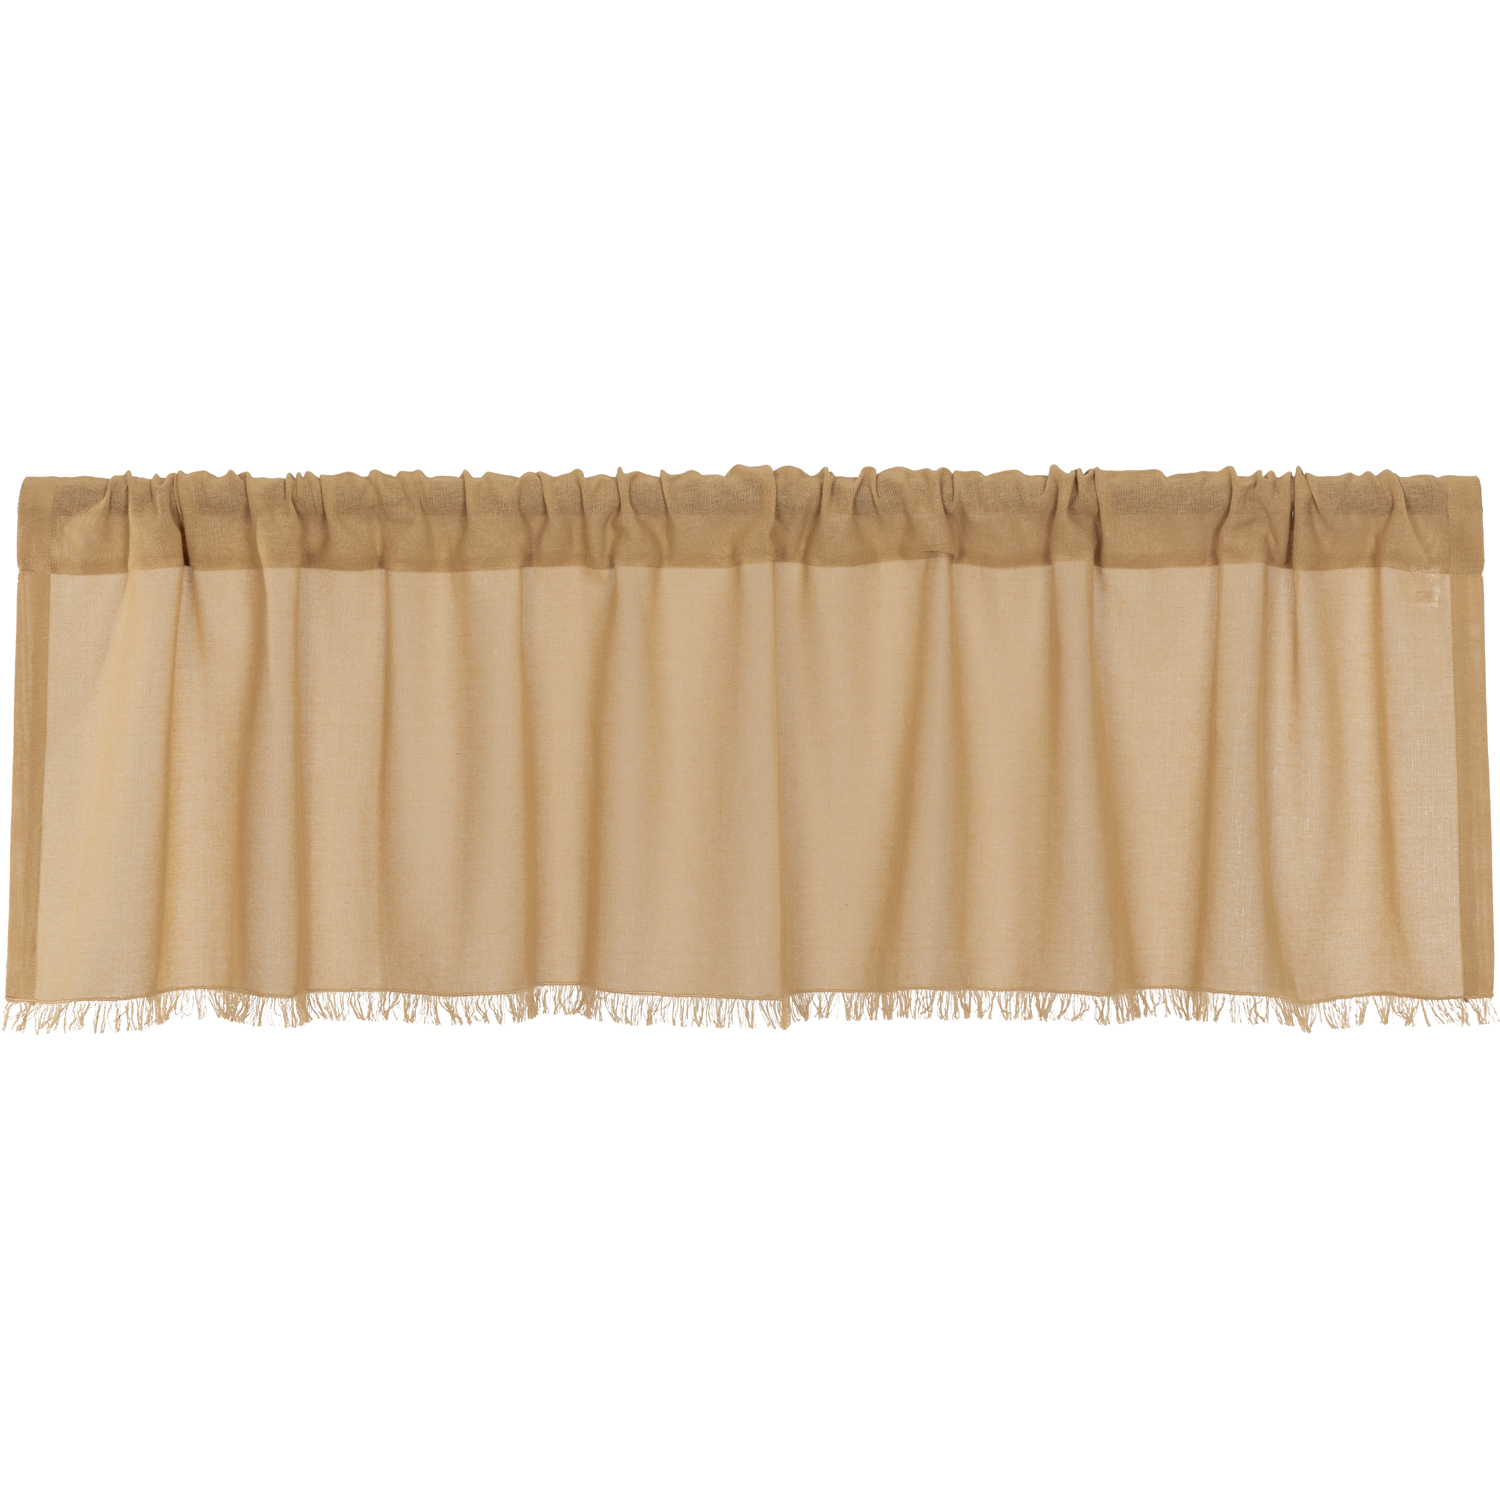 Tobacco Cloth Khaki Valance Fringed 16x60